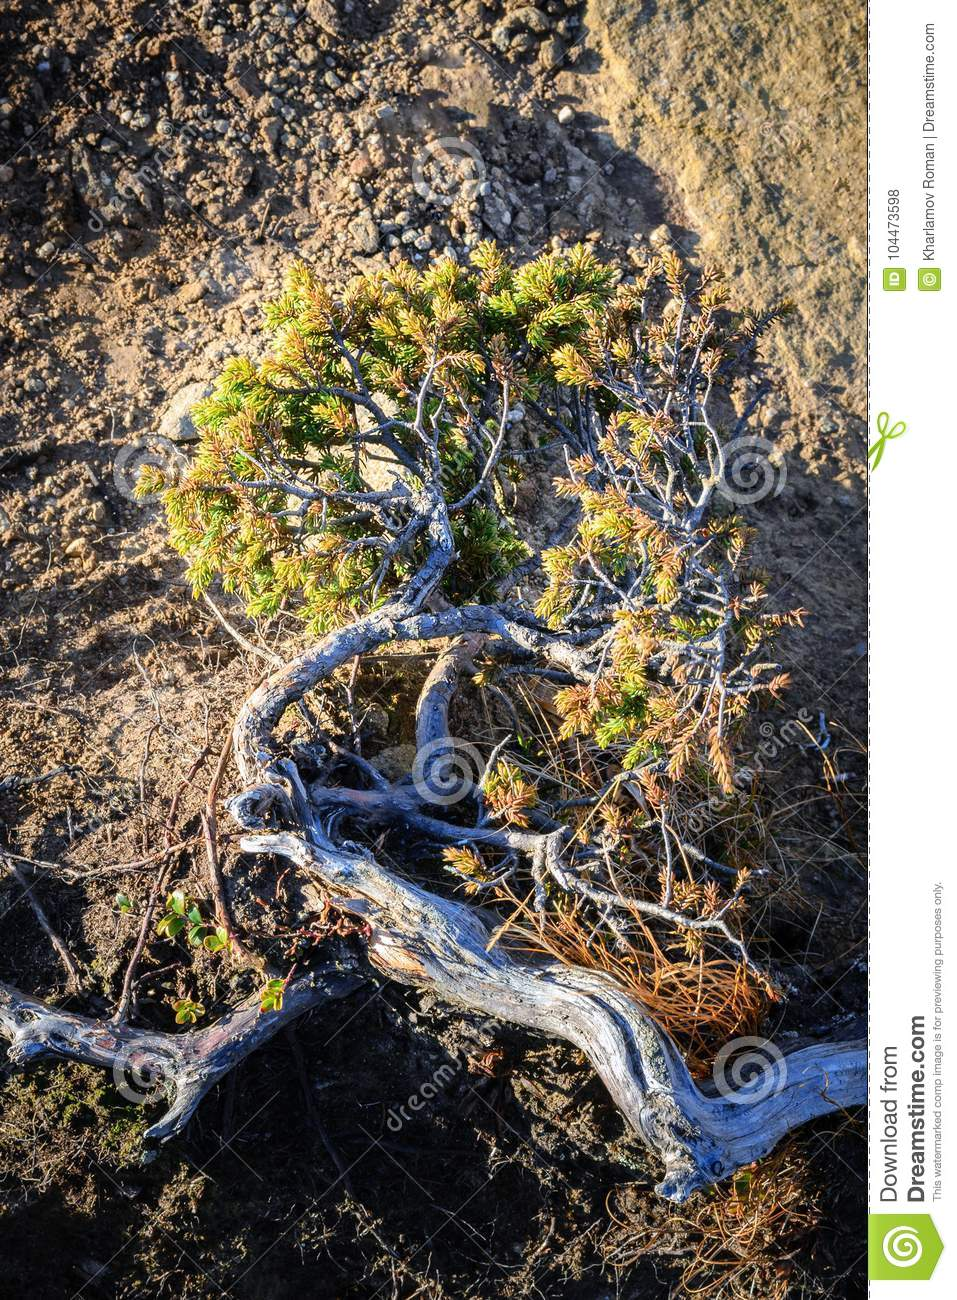 Close-up of a plant that survives in the harsh mountainous terrain in the morning sun